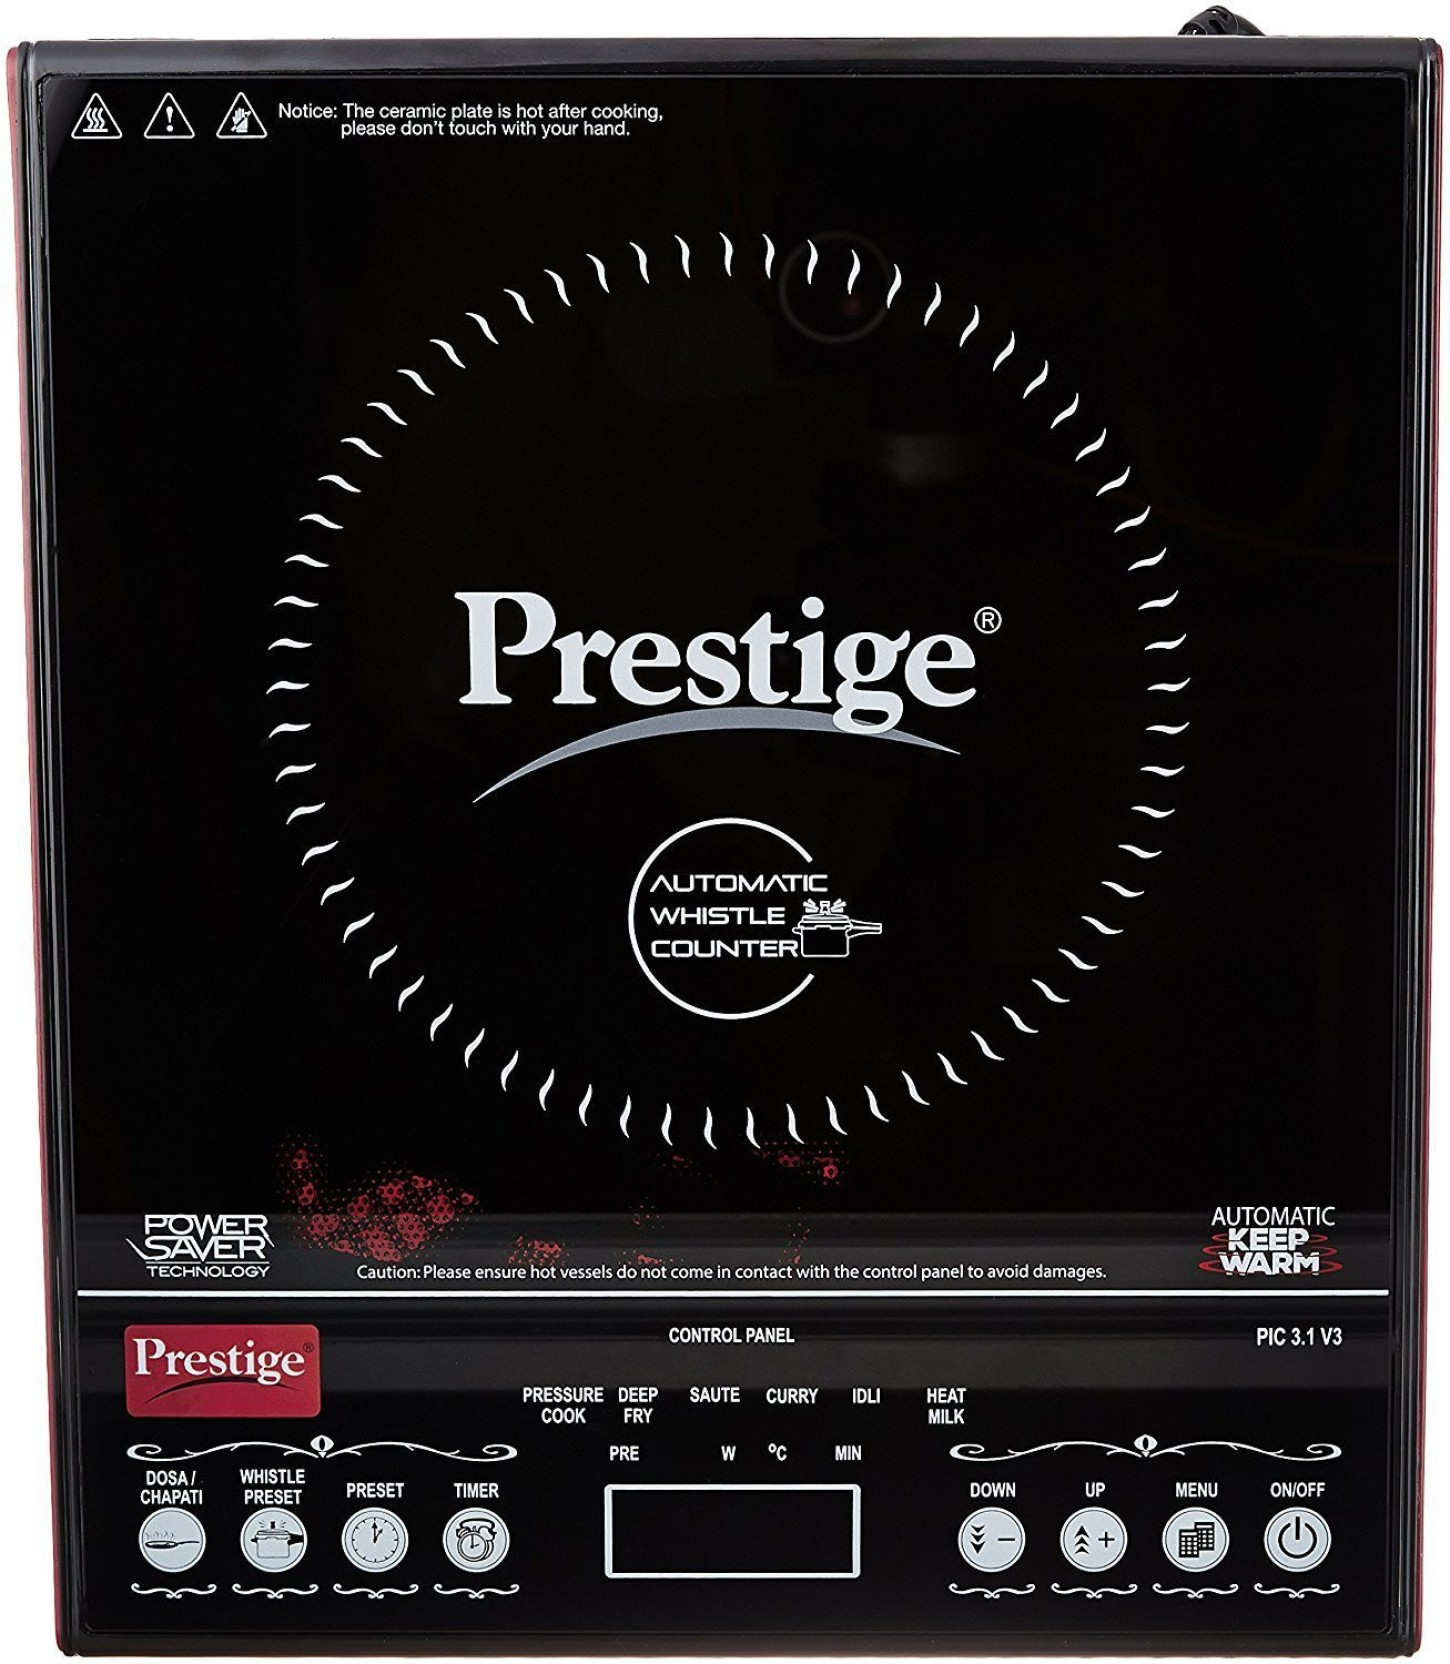 Prestige Pic 31 V3 Induction Cooktop Buy Philips Rice Cooker Hd 3118 32 Add To Cart